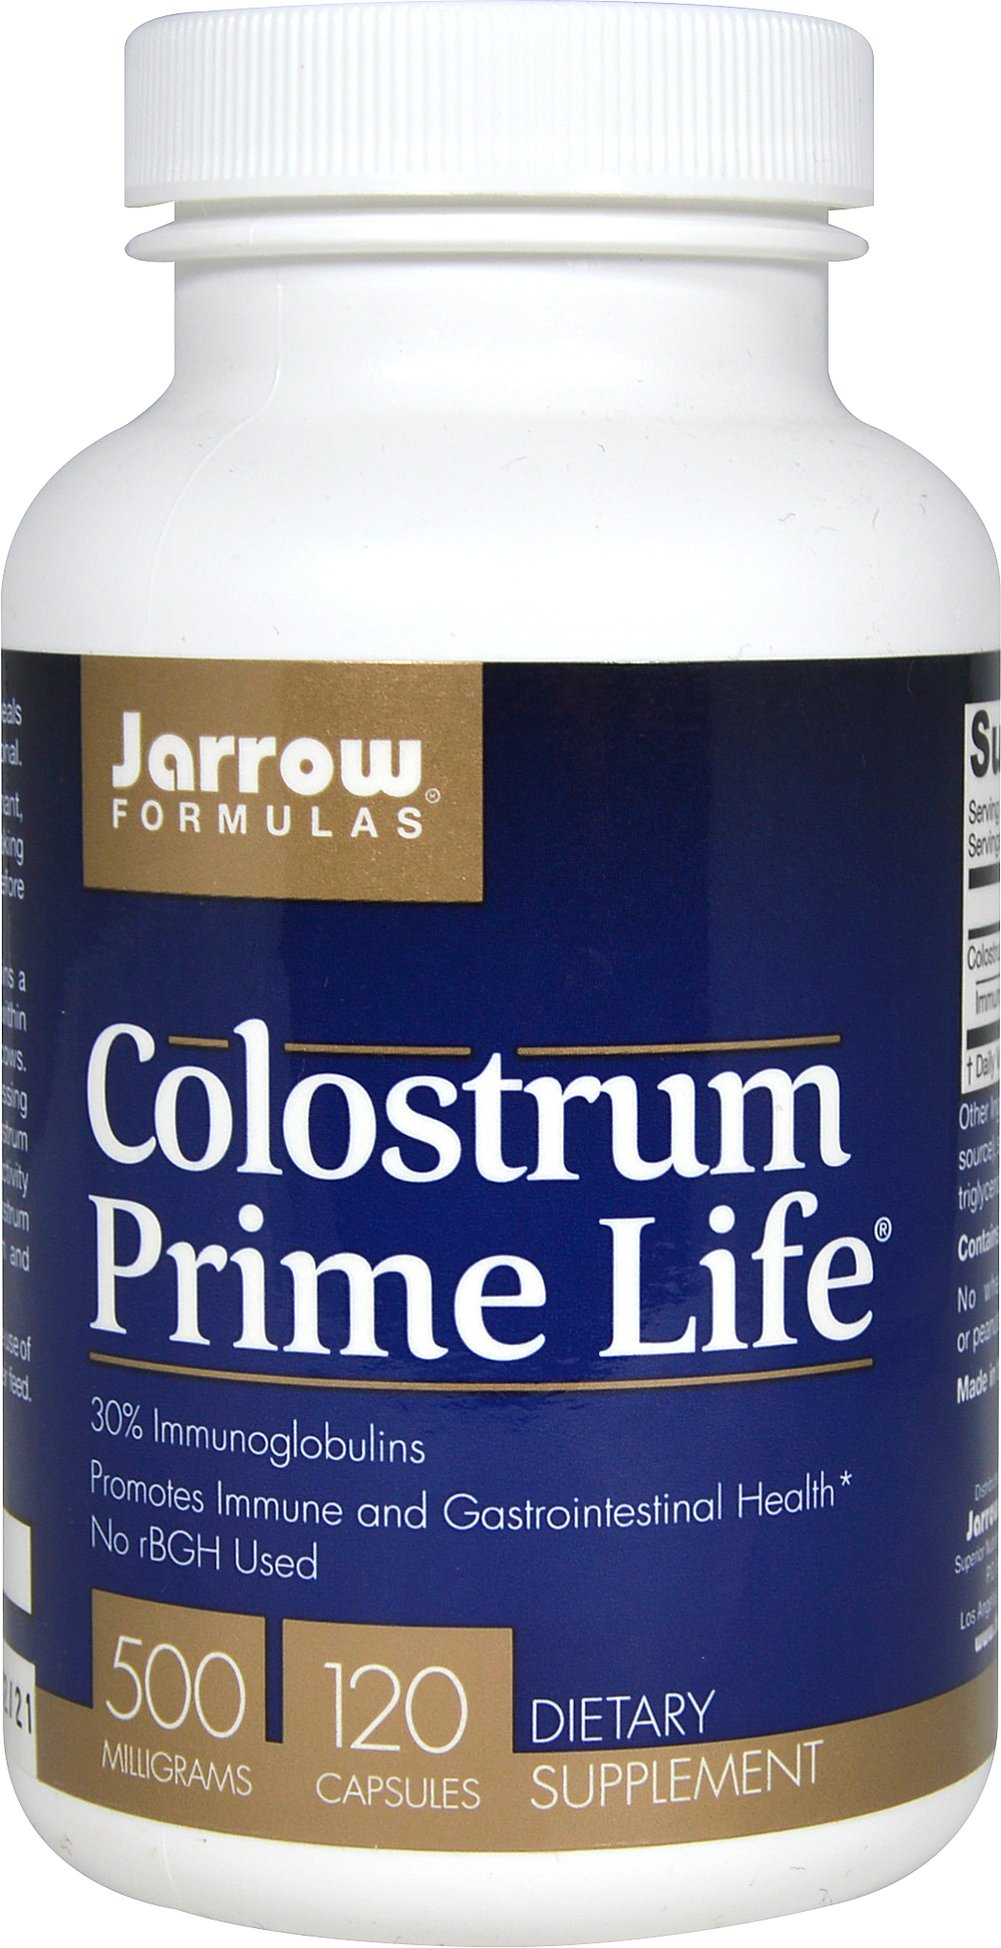 Colostrum Prime Life® 500 mg  120 Capsules 500 mg $16.99